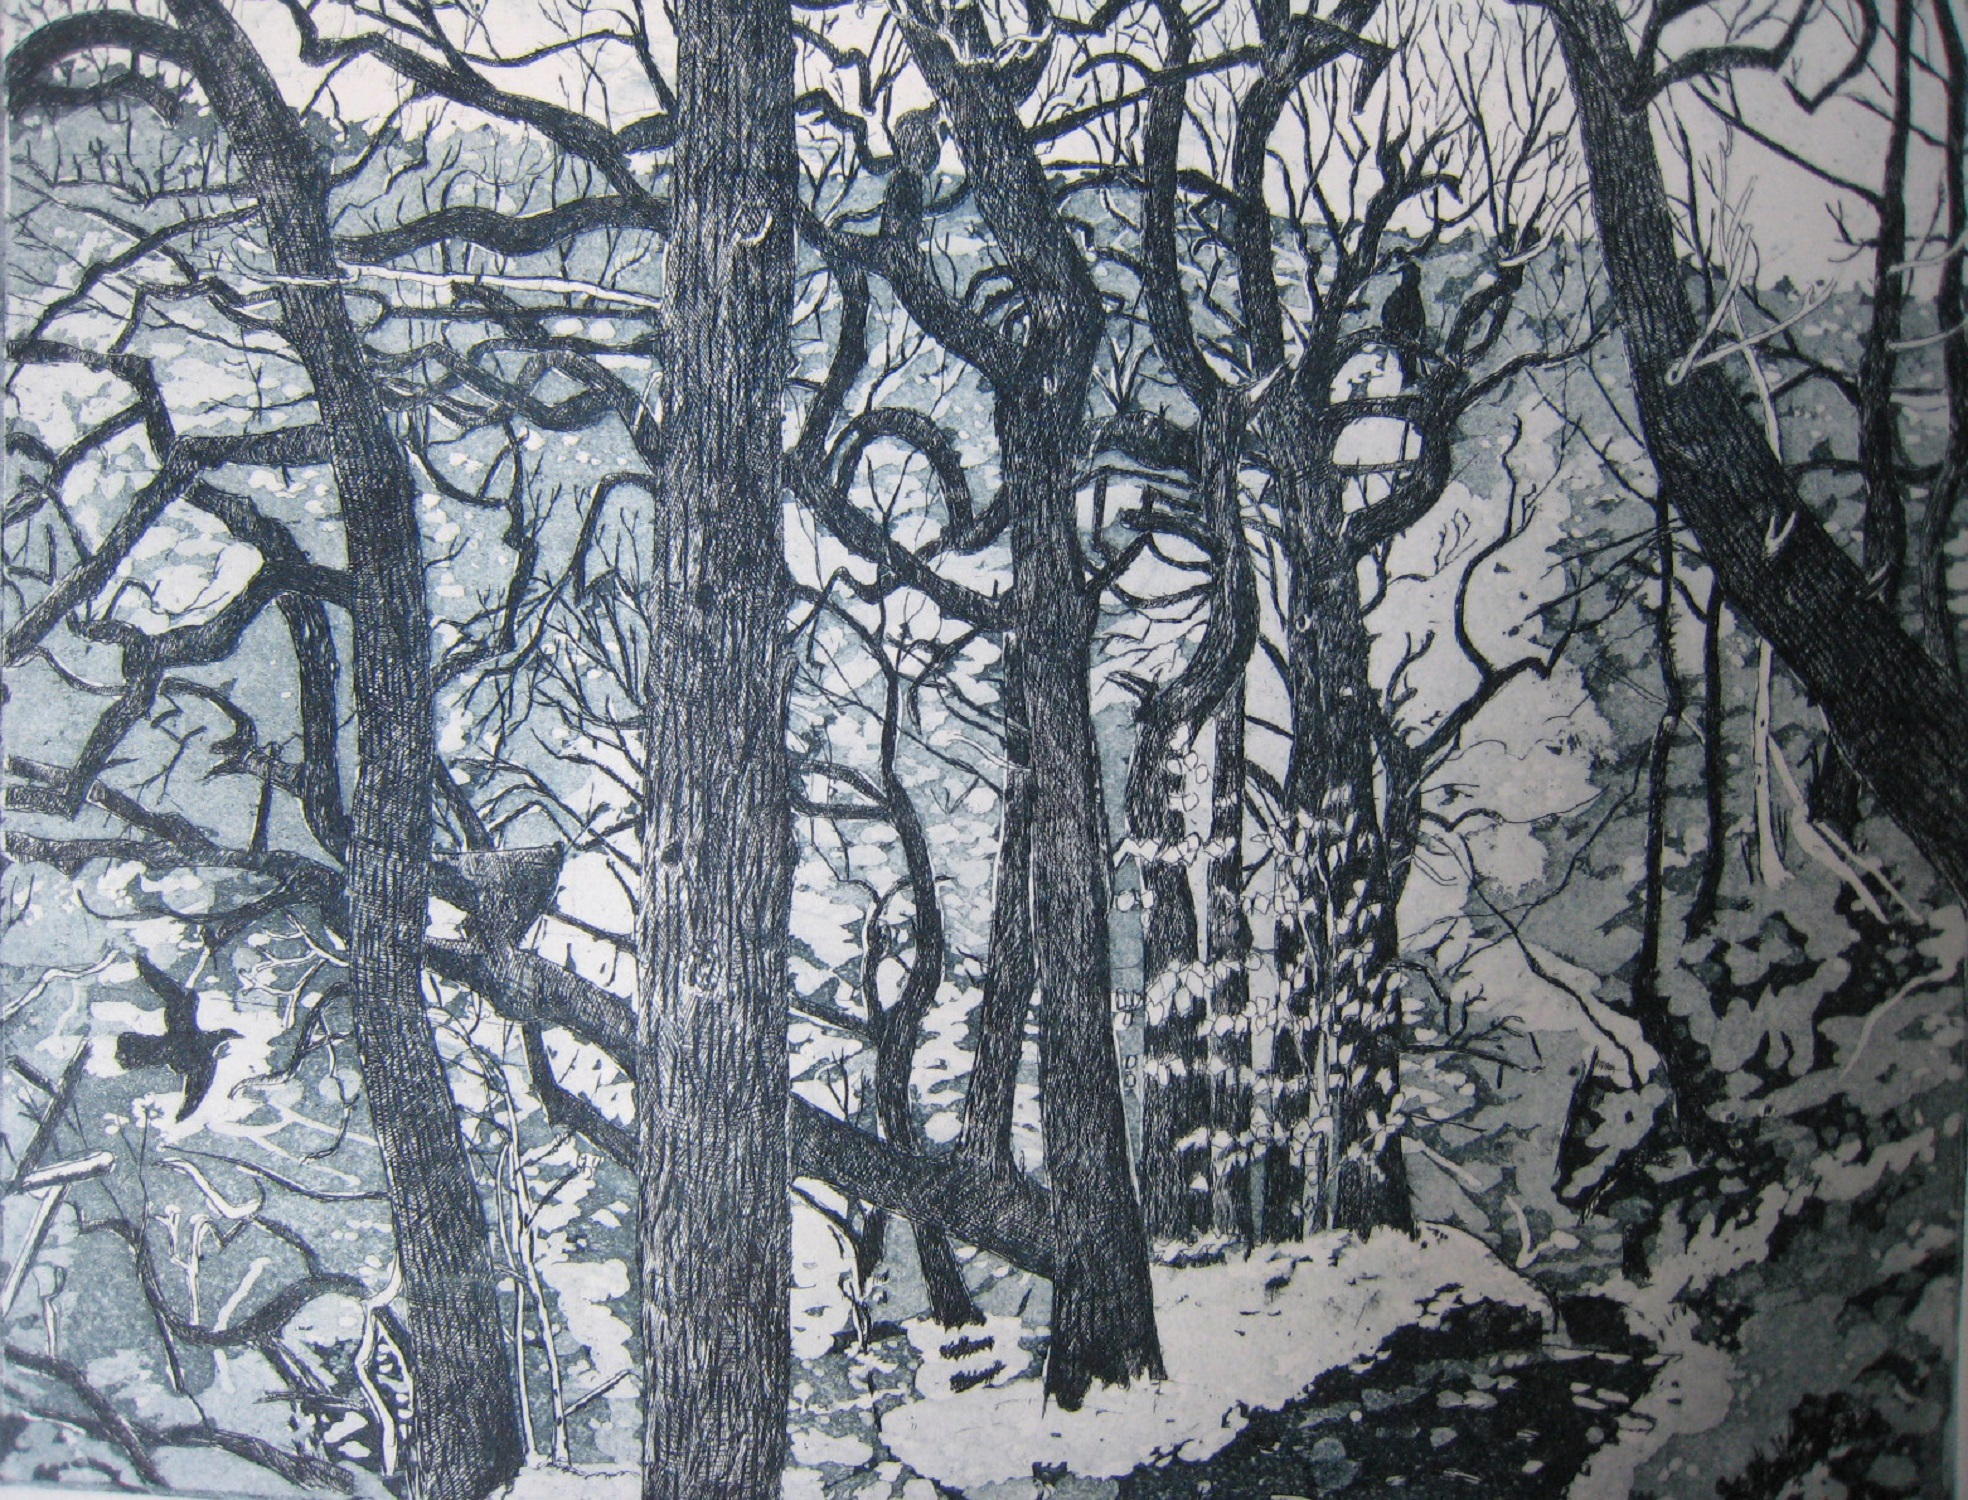 Through the Woods   etching   20 x 24 cm   (unframed)